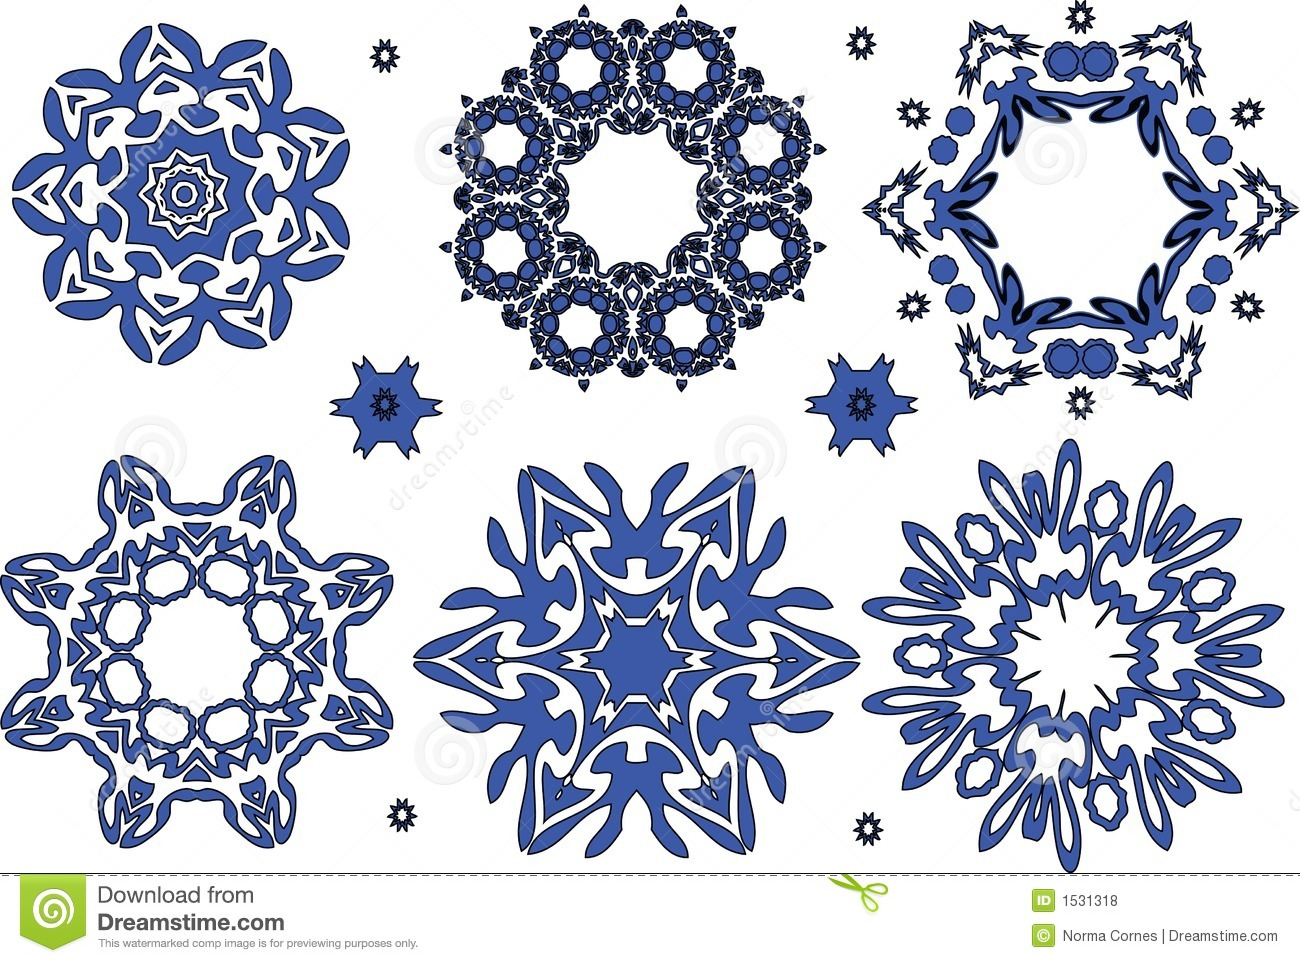 Http Www Dreamstime Com Royalty Free Stock Photos Ethnic Designs Image1531318